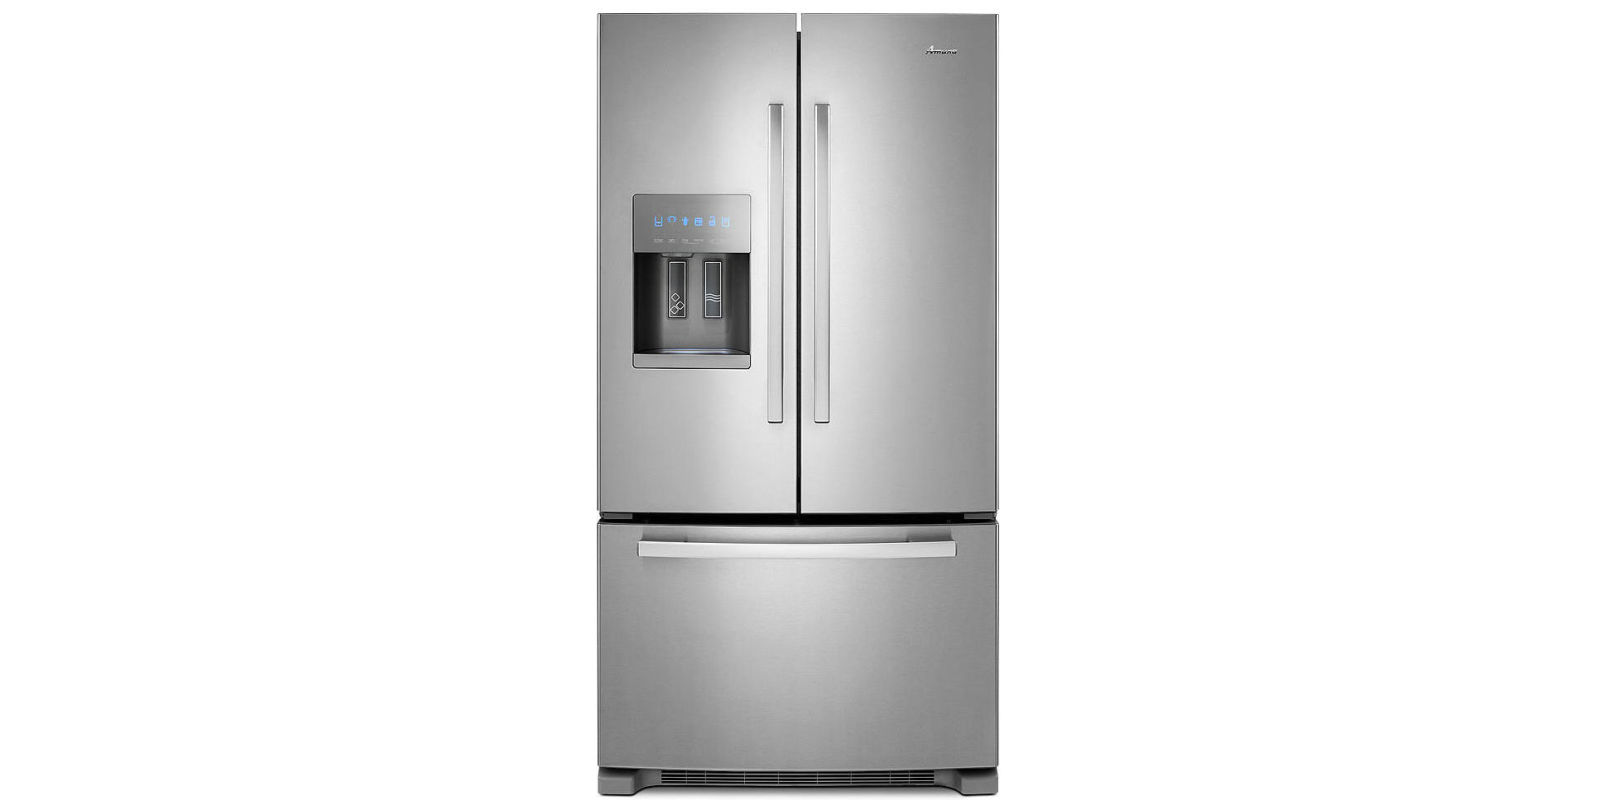 Viking 36 french door bottom freezer rurf336ss5 review price and refrigerator reviews rubansaba